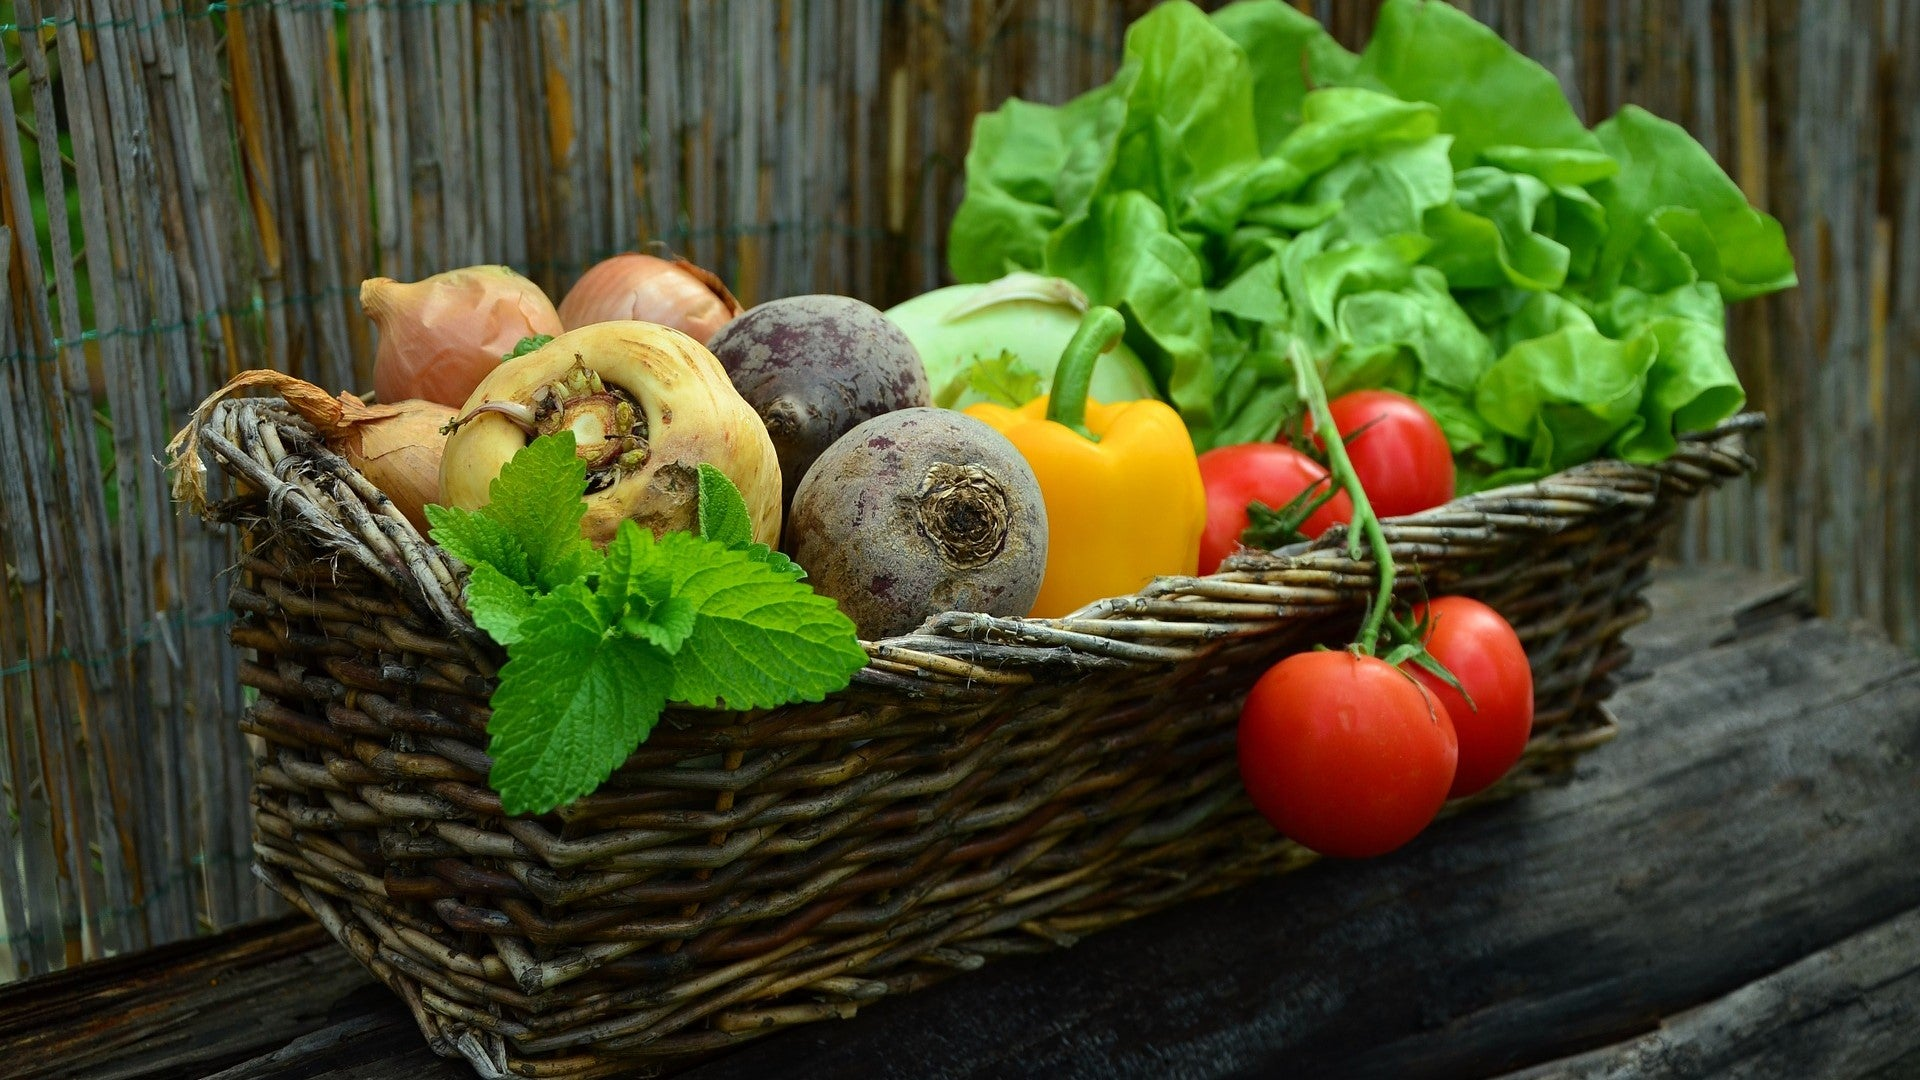 Basket Full Of Garden Vegetables